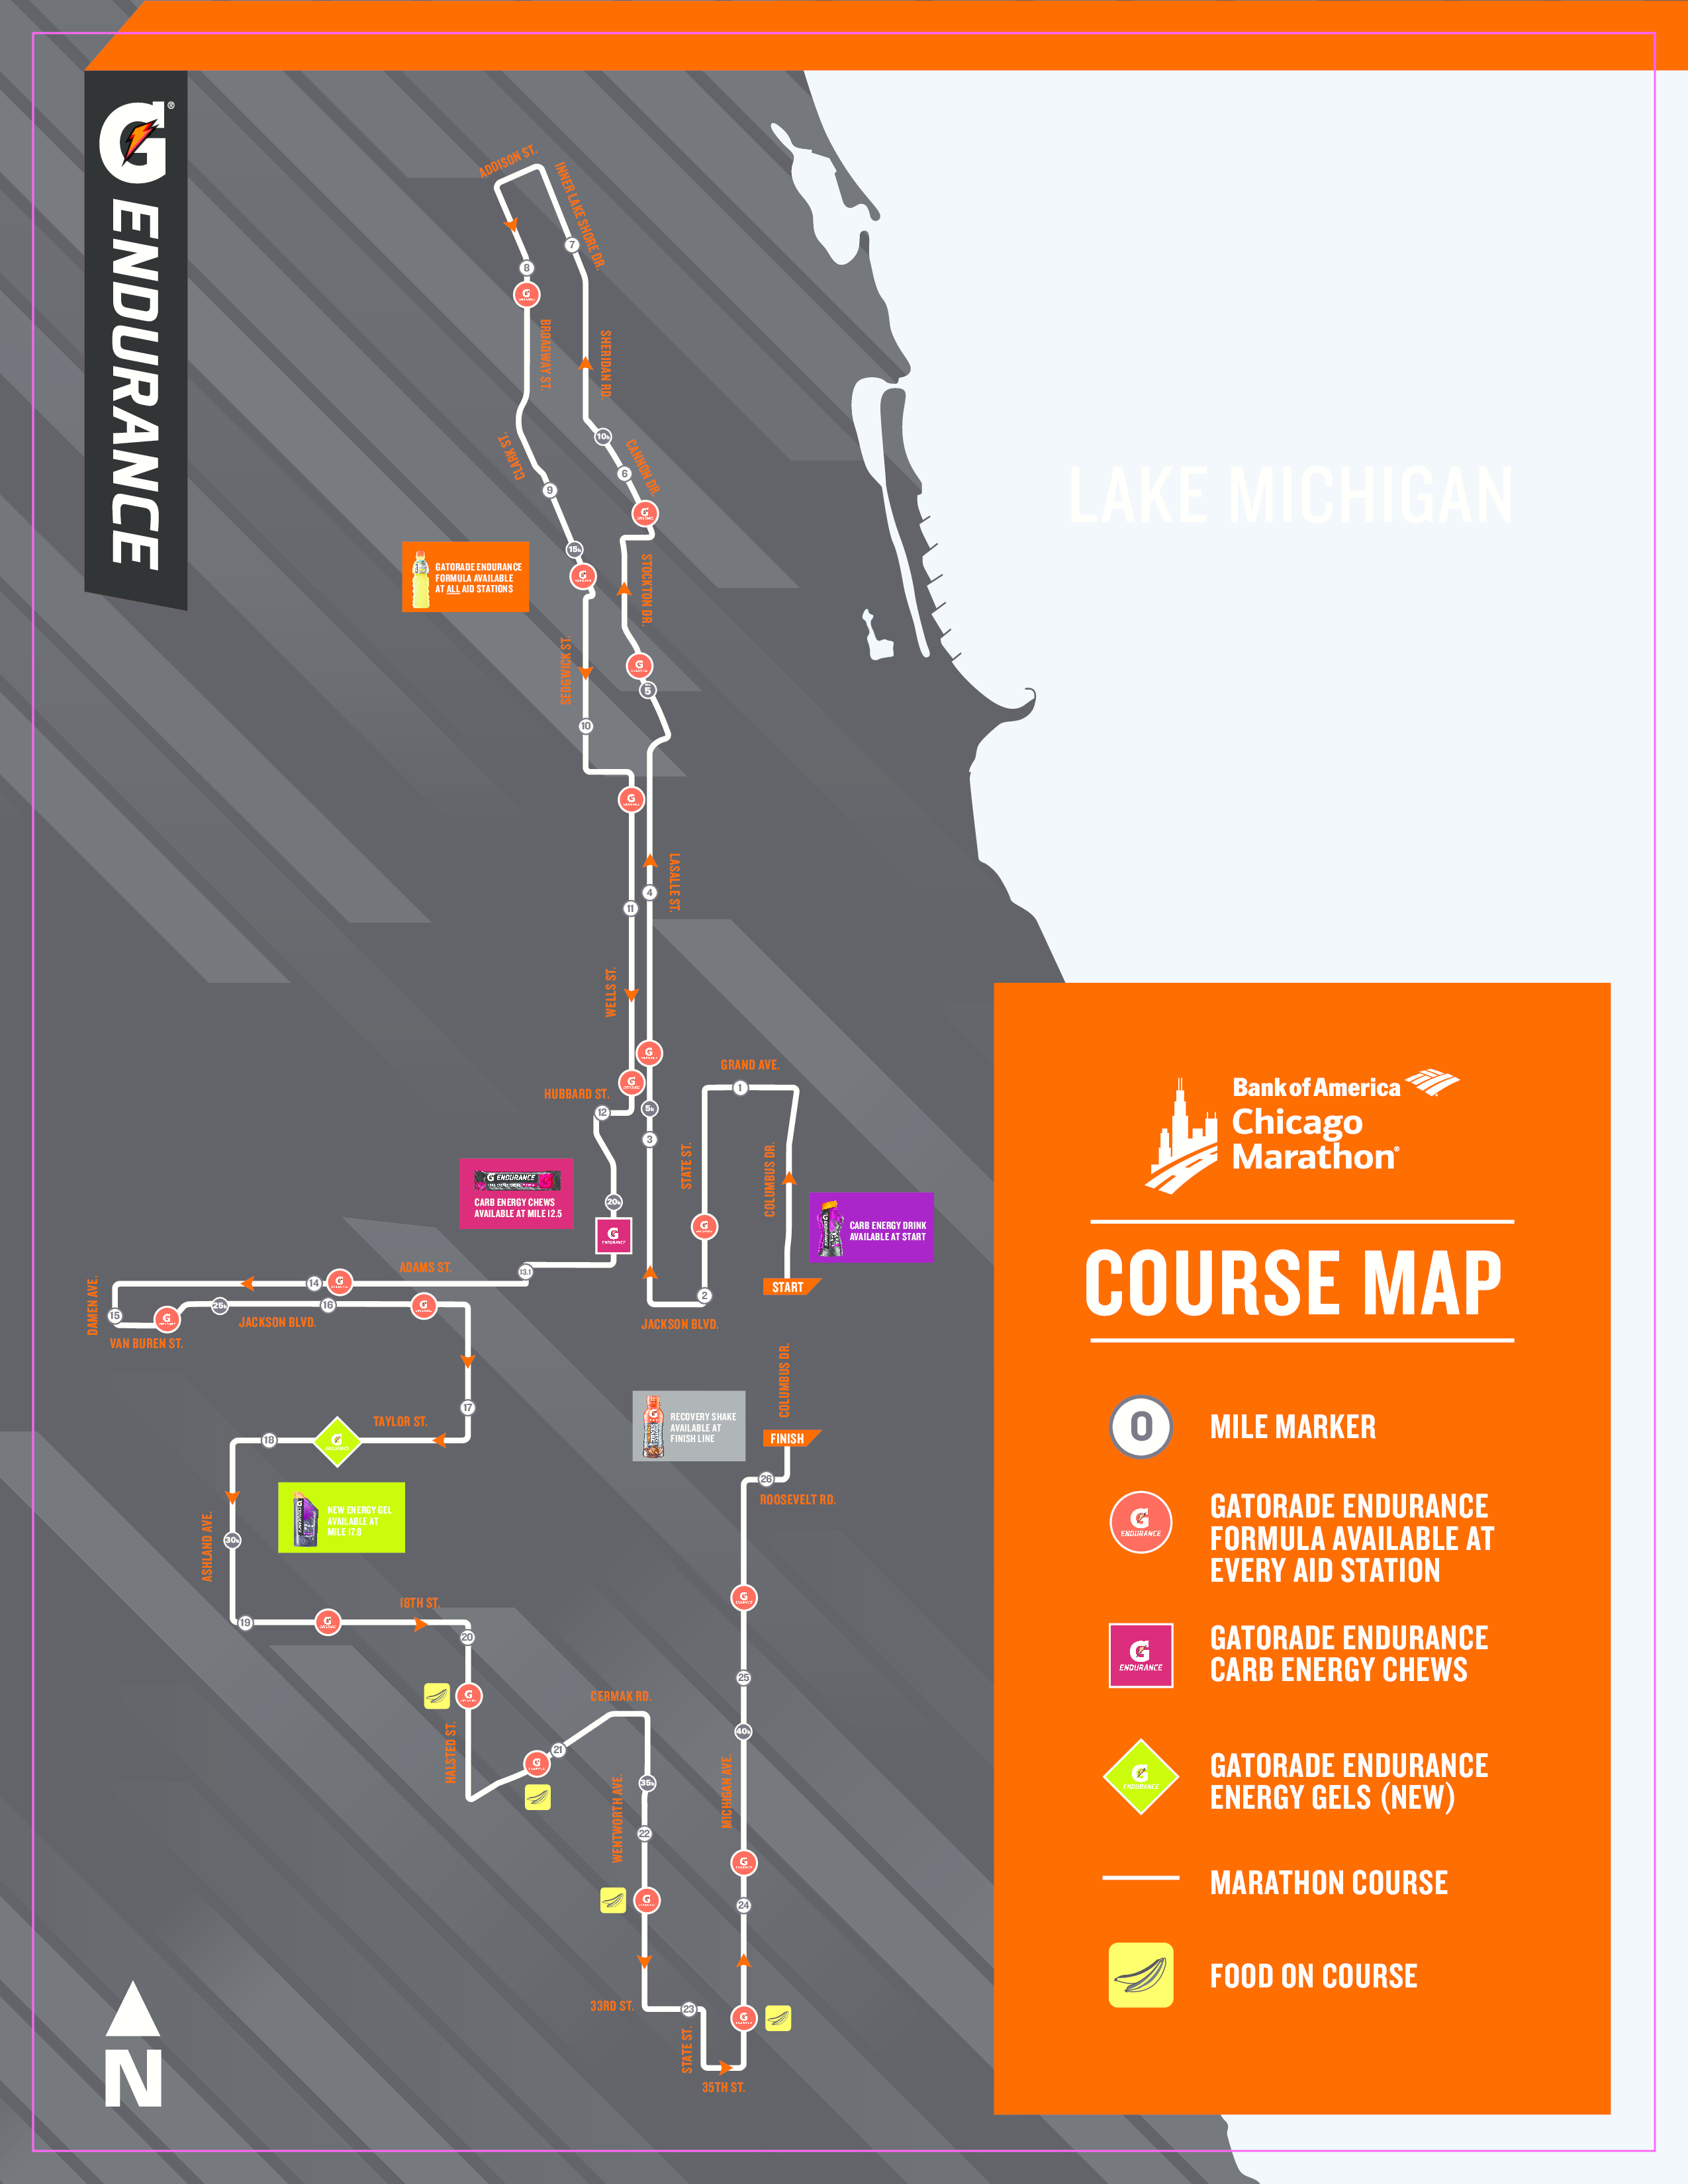 Here's a Nutrition Plan and Map of Where Gatorade Endurance Products on